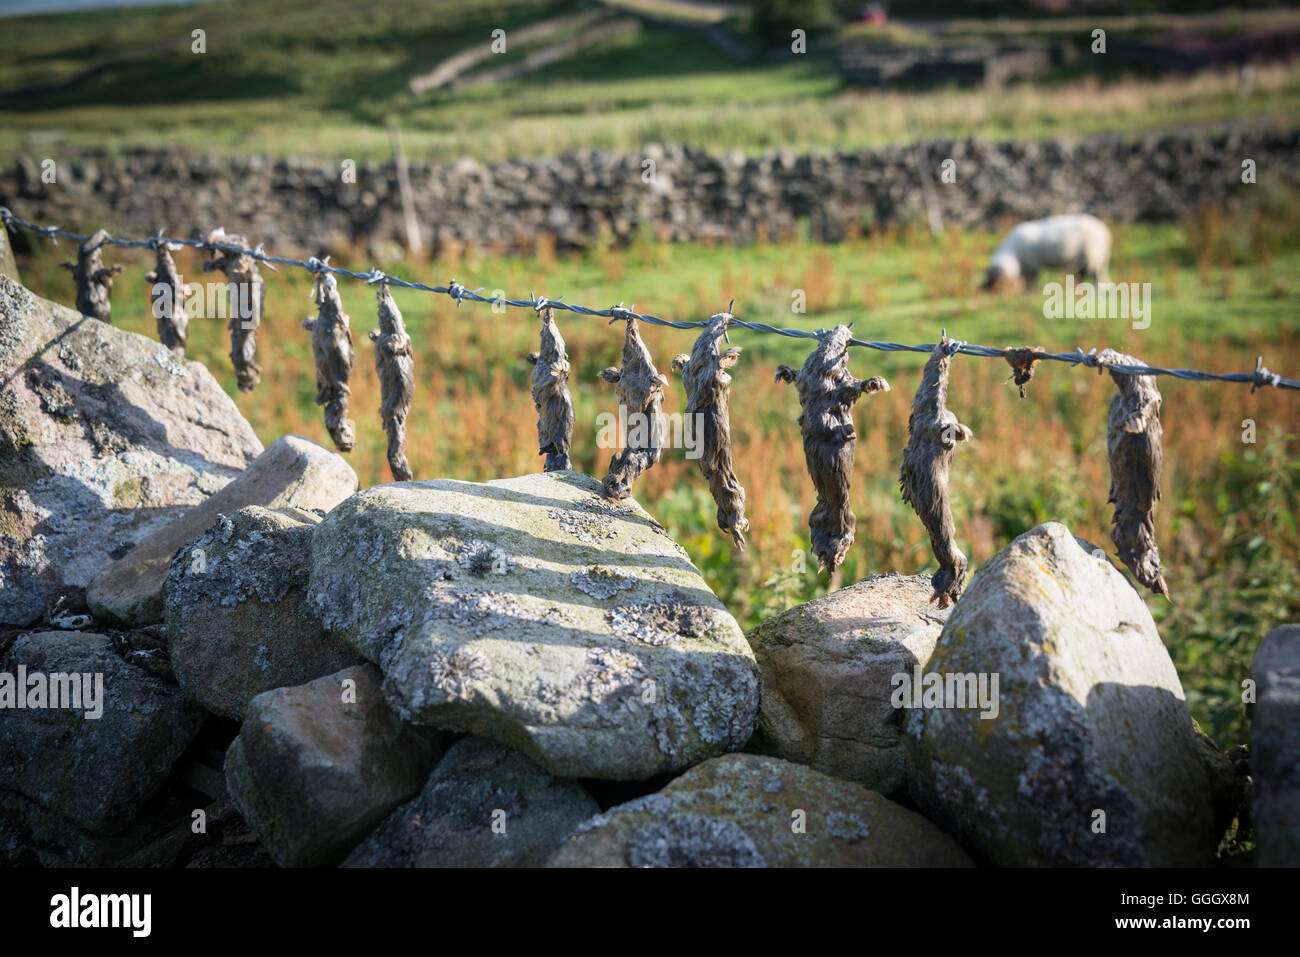 Dead creatures drying on barbed wire near Little Eggleston Beck, Teesdale, County Durham, UK - Stock Image